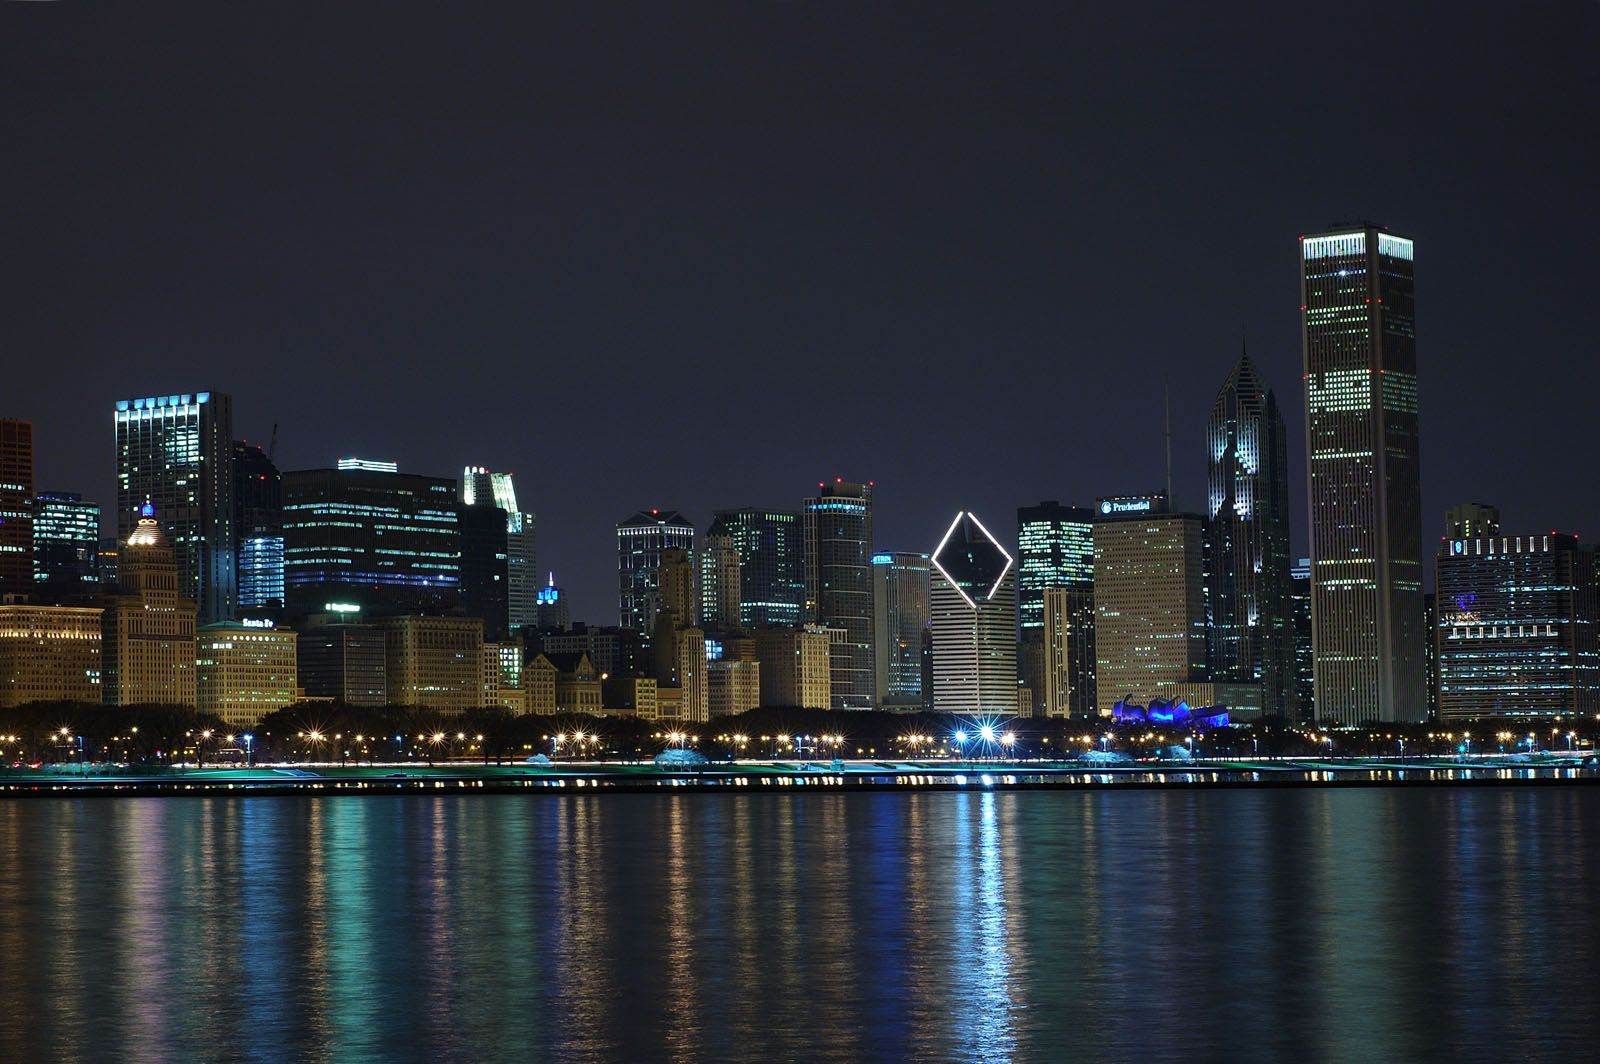 Hd wall paper 1920x1080 chicago chicago wallpaper hd lilz chicago hd wall voltagebd Gallery